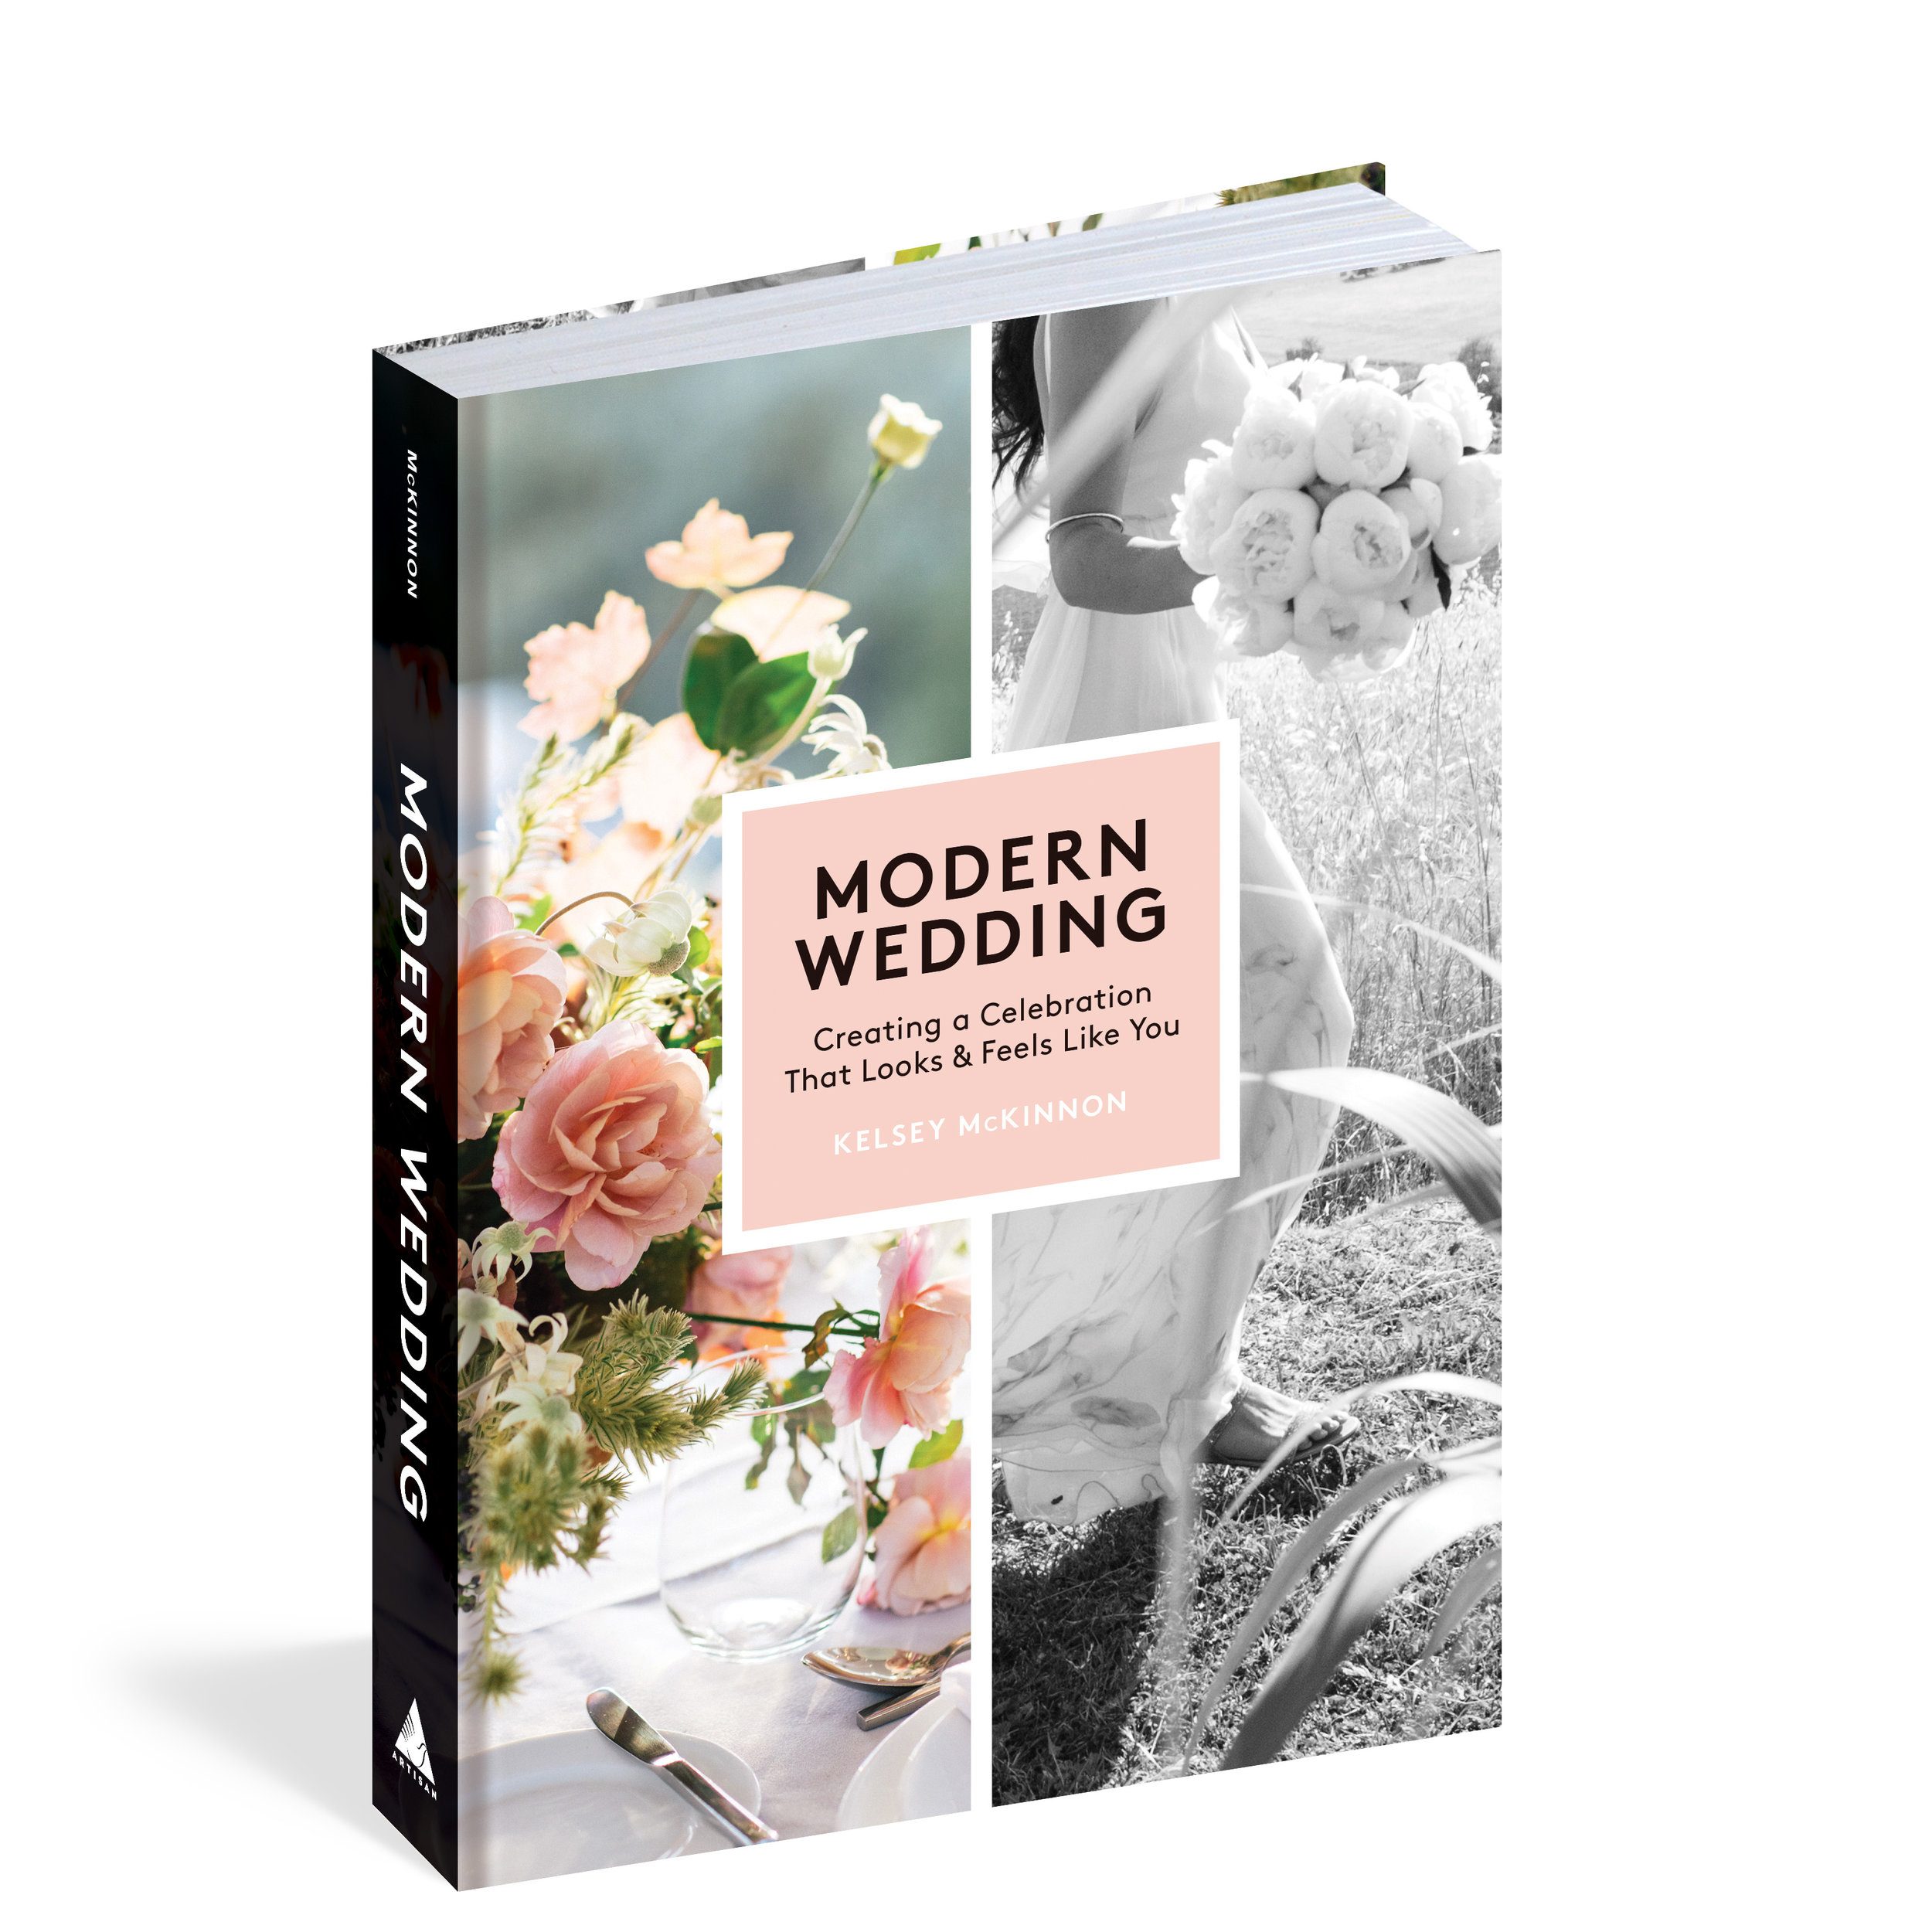 Slow Down and Enjoy your Engagement with the Modern Wedding Book by Kelsey McKinnon